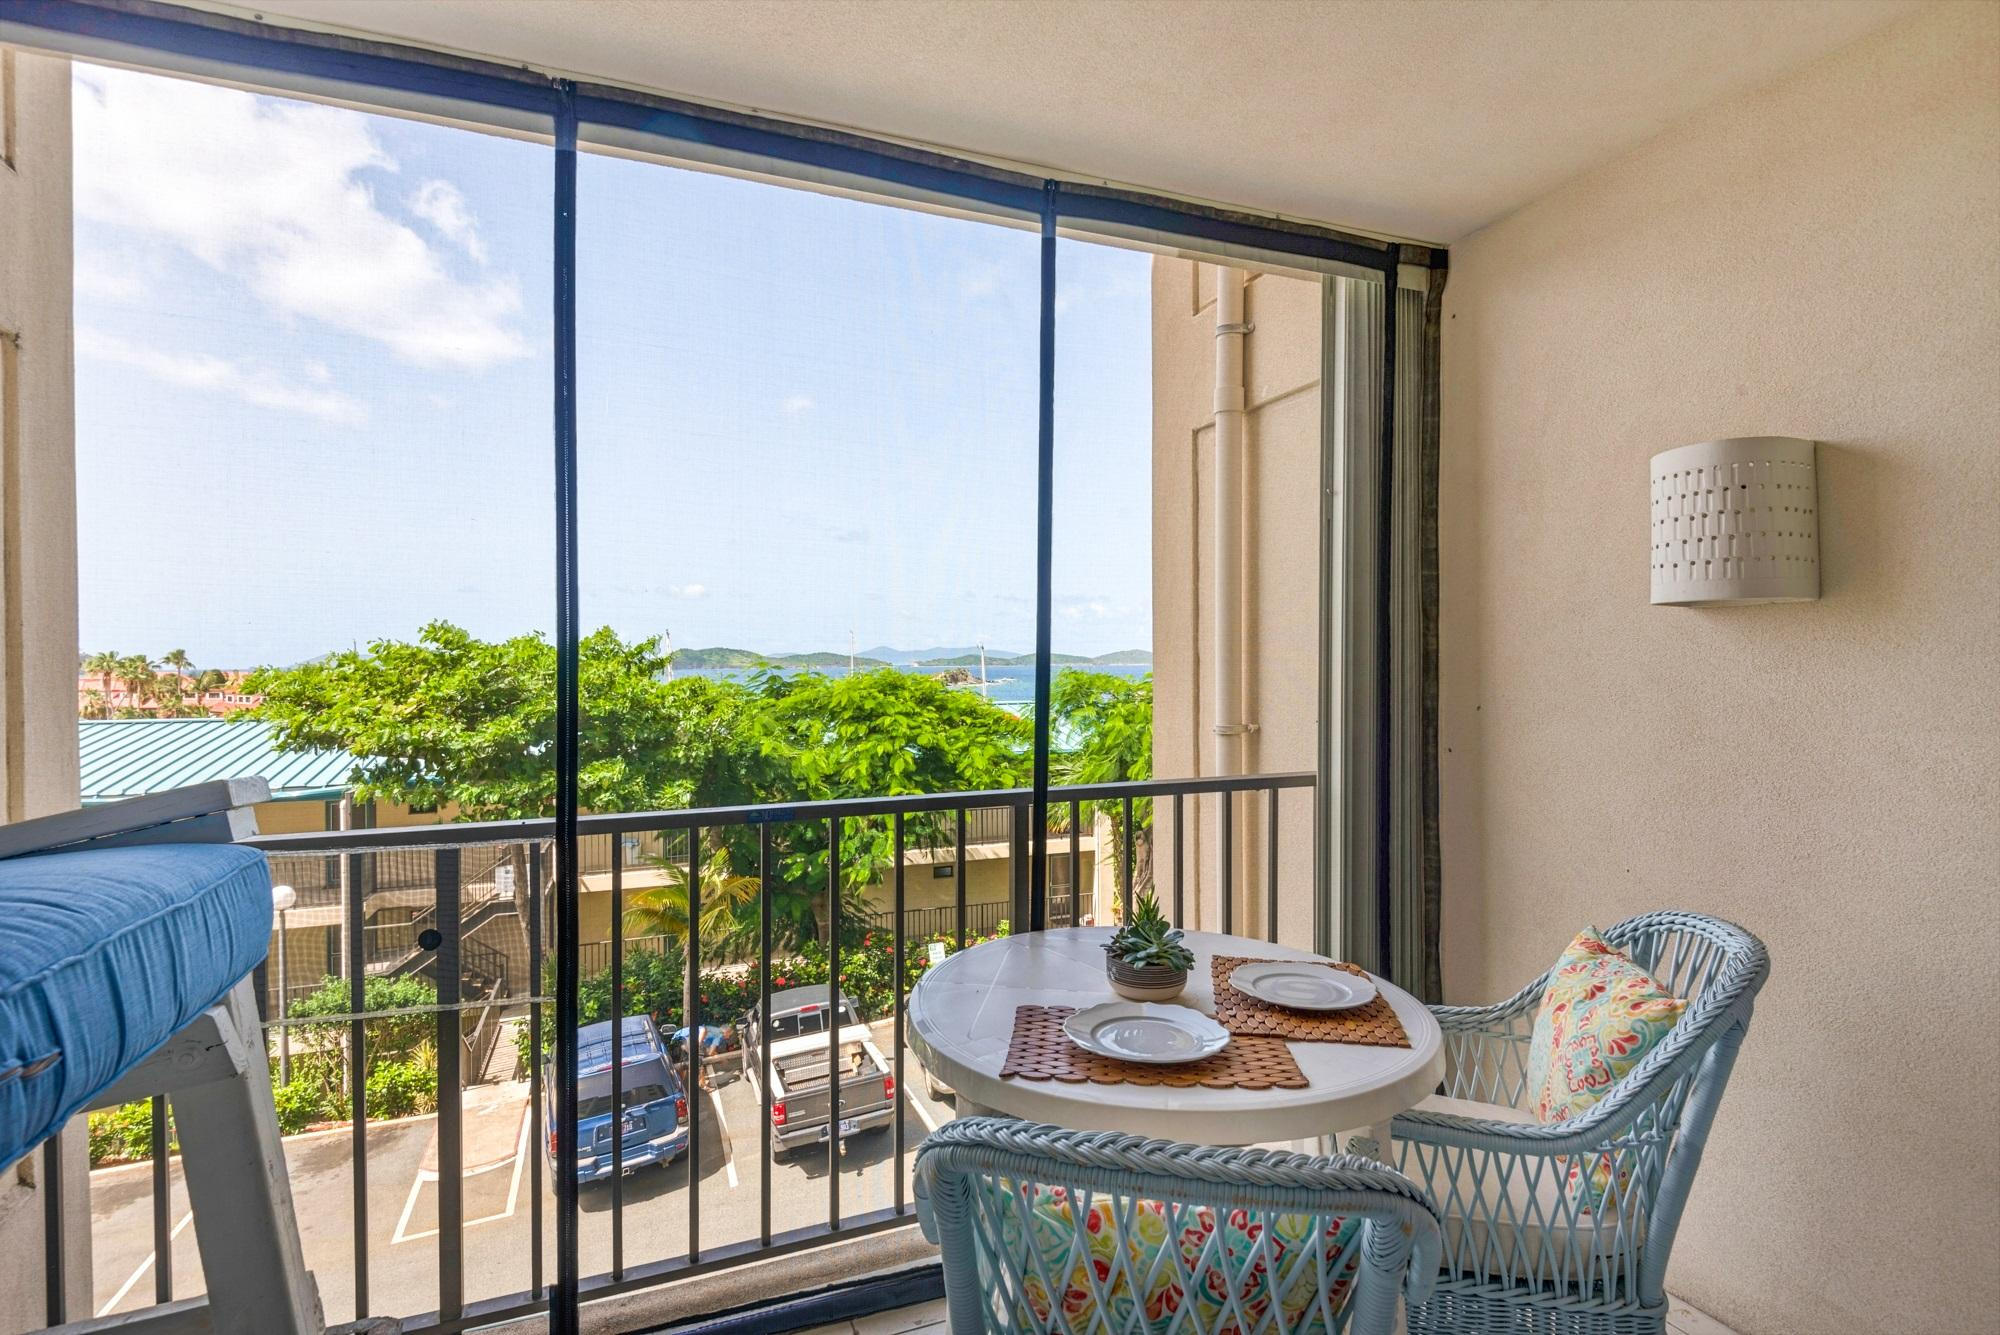 Additional photo for property listing at Sapphire Hill Village 192 Smith Bay EE Sapphire Hill Village 192 Smith Bay EE St Thomas, Virgin Islands 00802 United States Virgin Islands